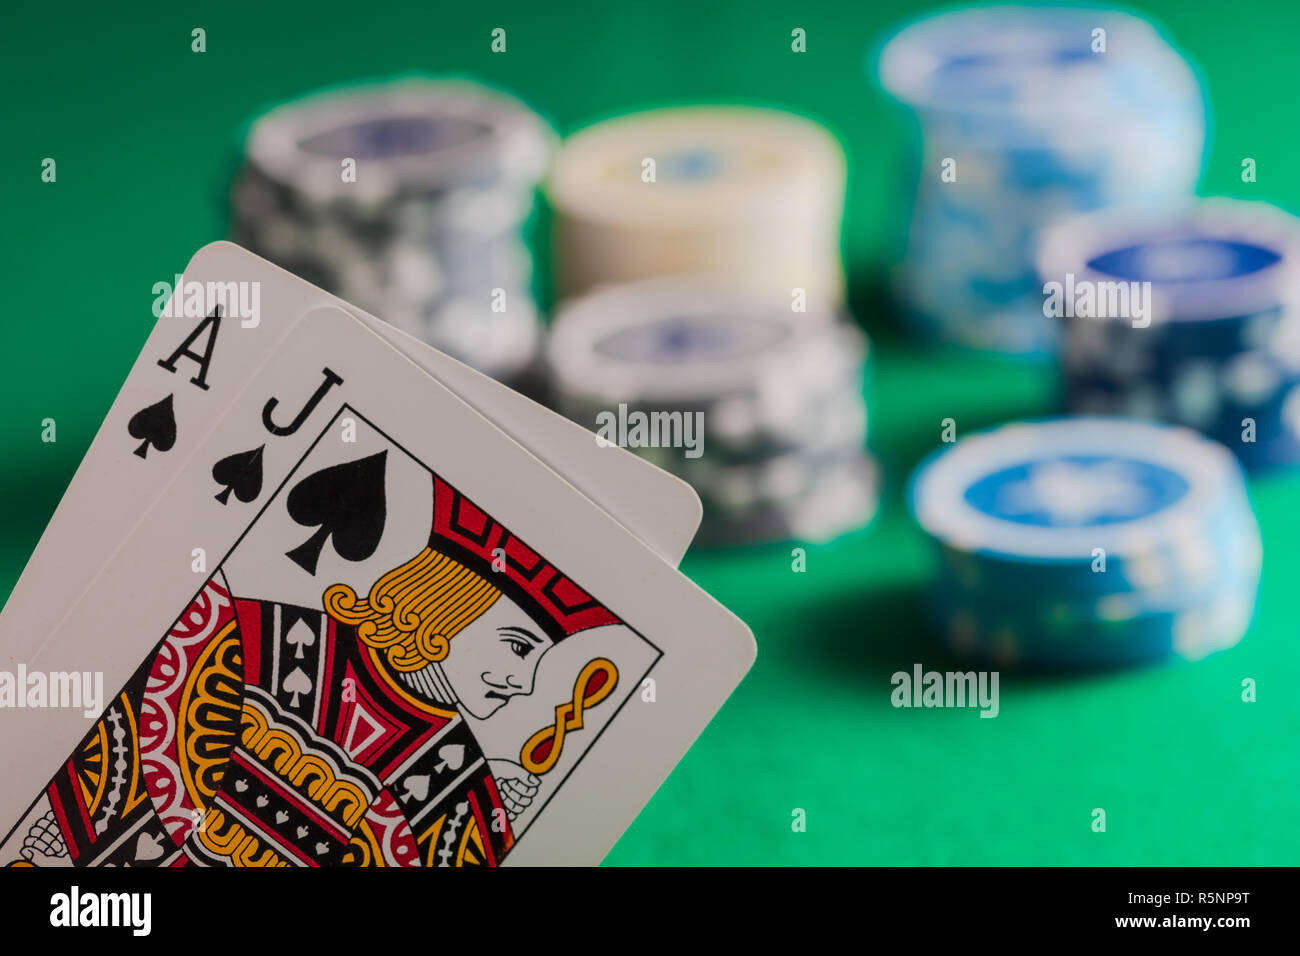 Casino, gambling concept. Blackjack and poker chips on green felt blur background - Stock Image